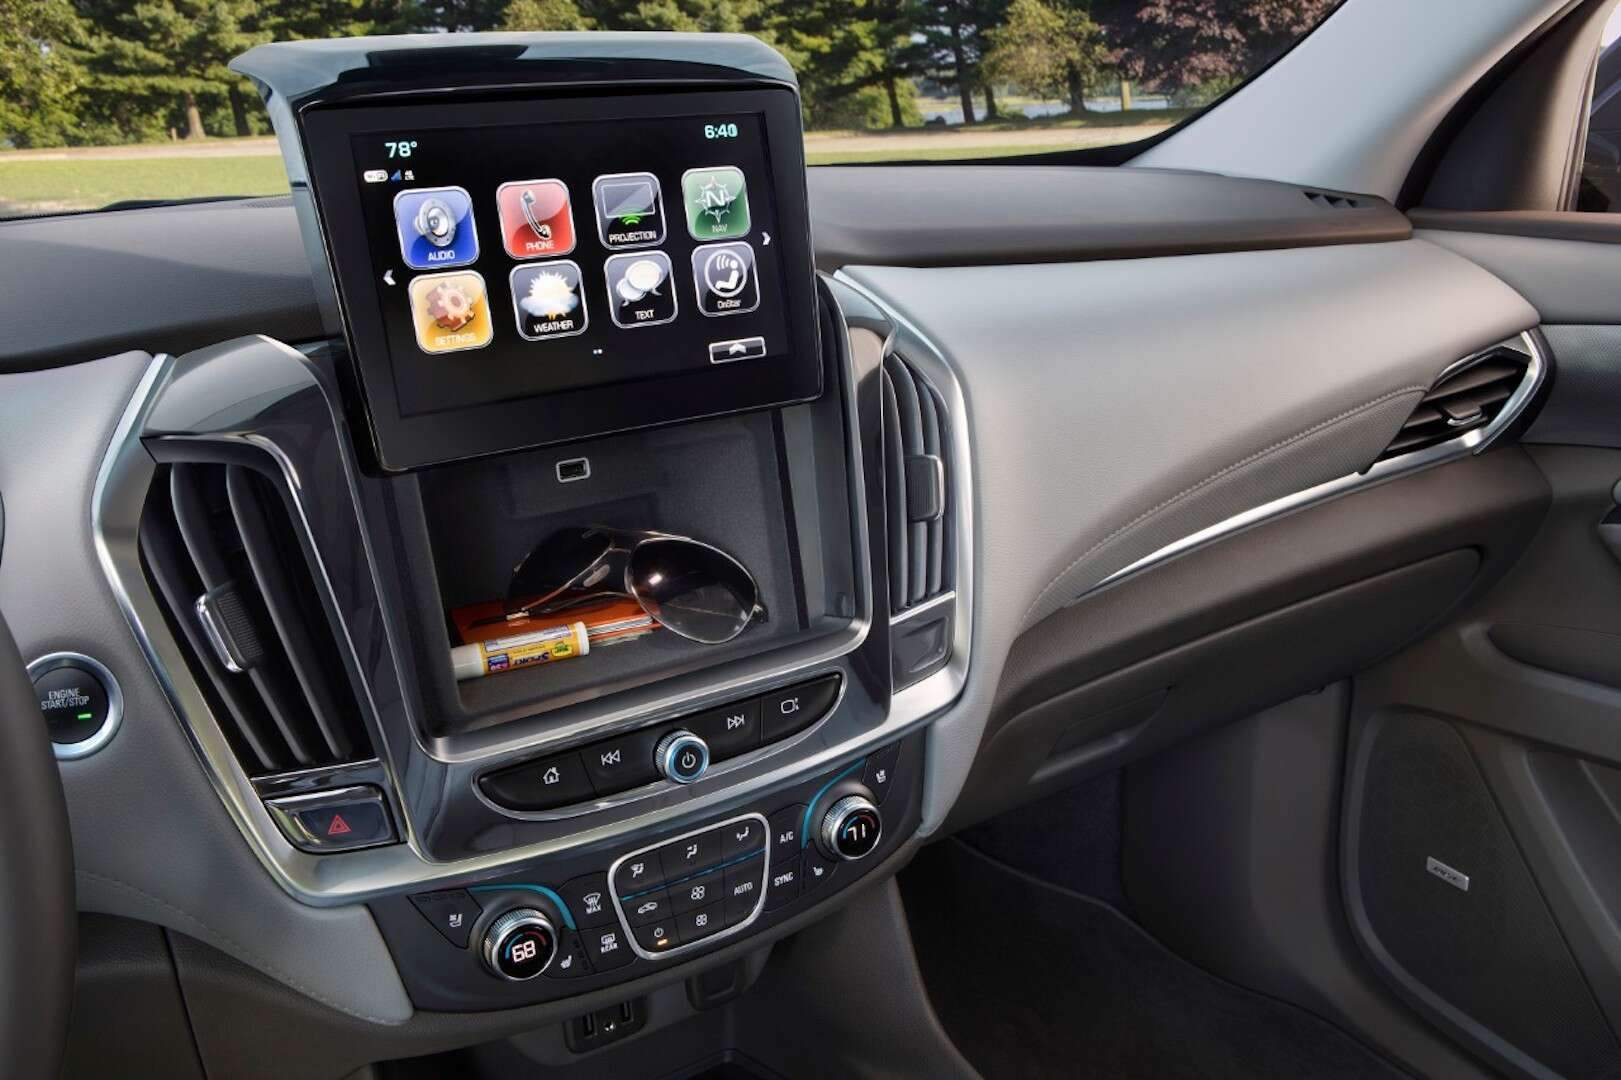 2018 Chevrolet Traverse Interior MyLInk Secret Storage